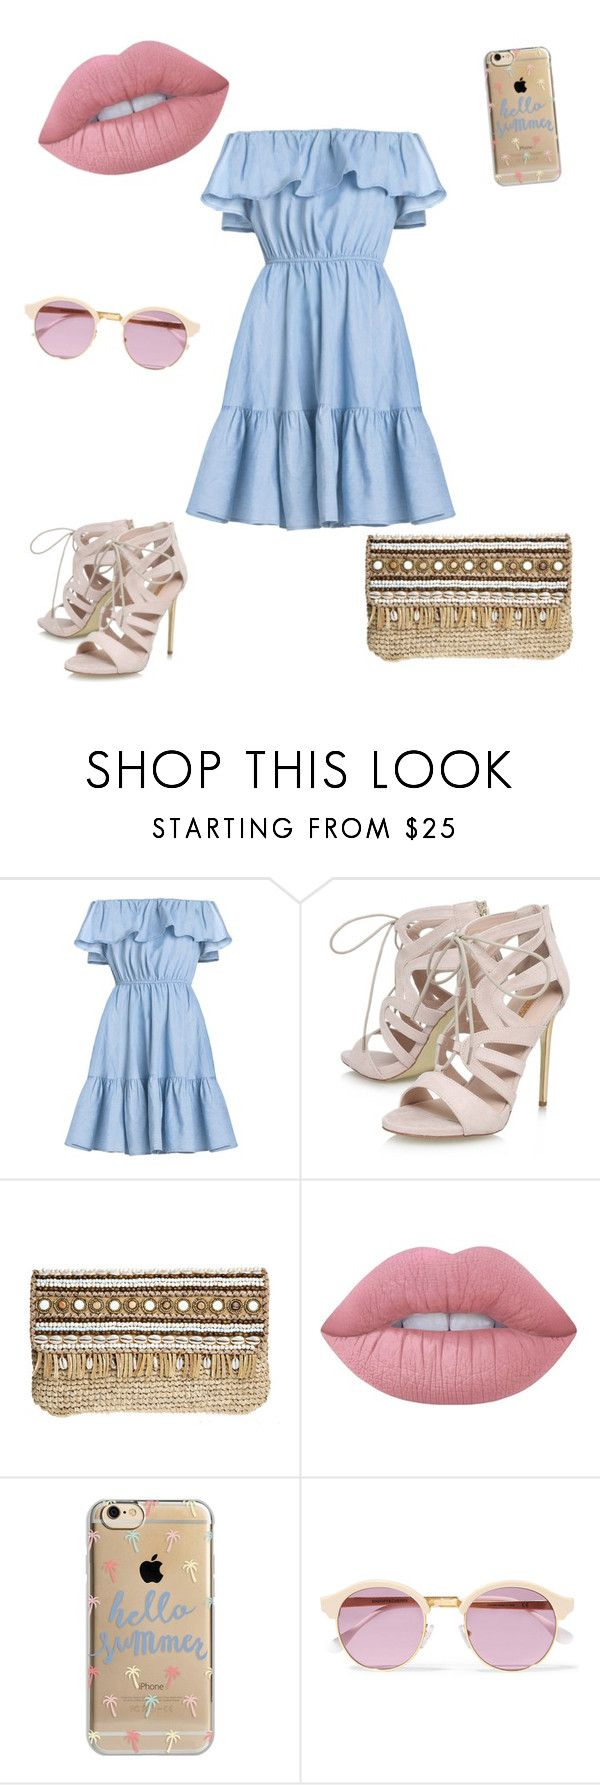 """""""Summery Blue Dress"""" by wanderherz ❤ liked on Polyvore featuring Carvela, Skemo, Lime Crime, Agent 18 and Sheriff&Cherry"""